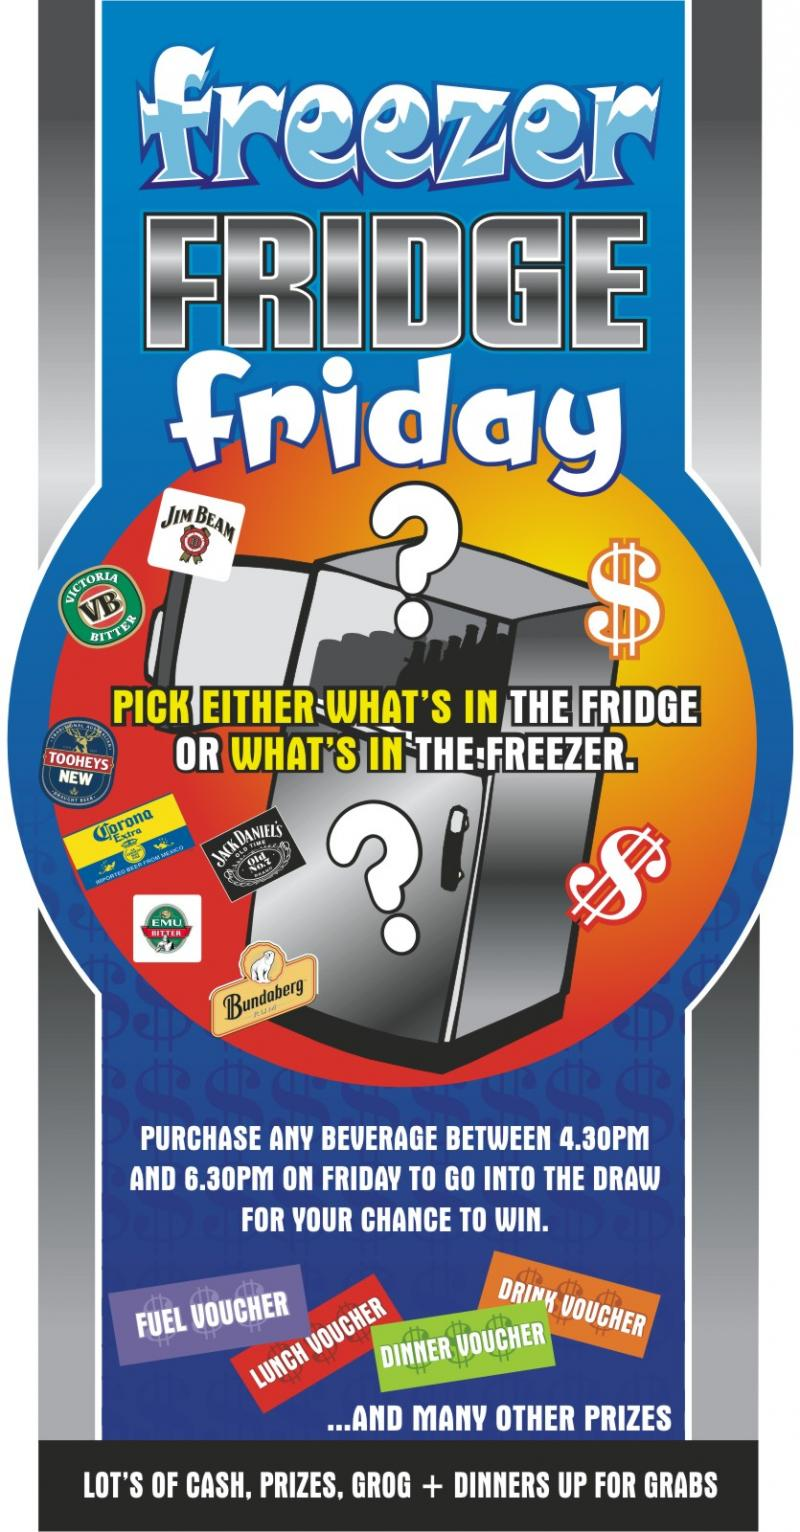 Freezer Fridge Friday Promotions